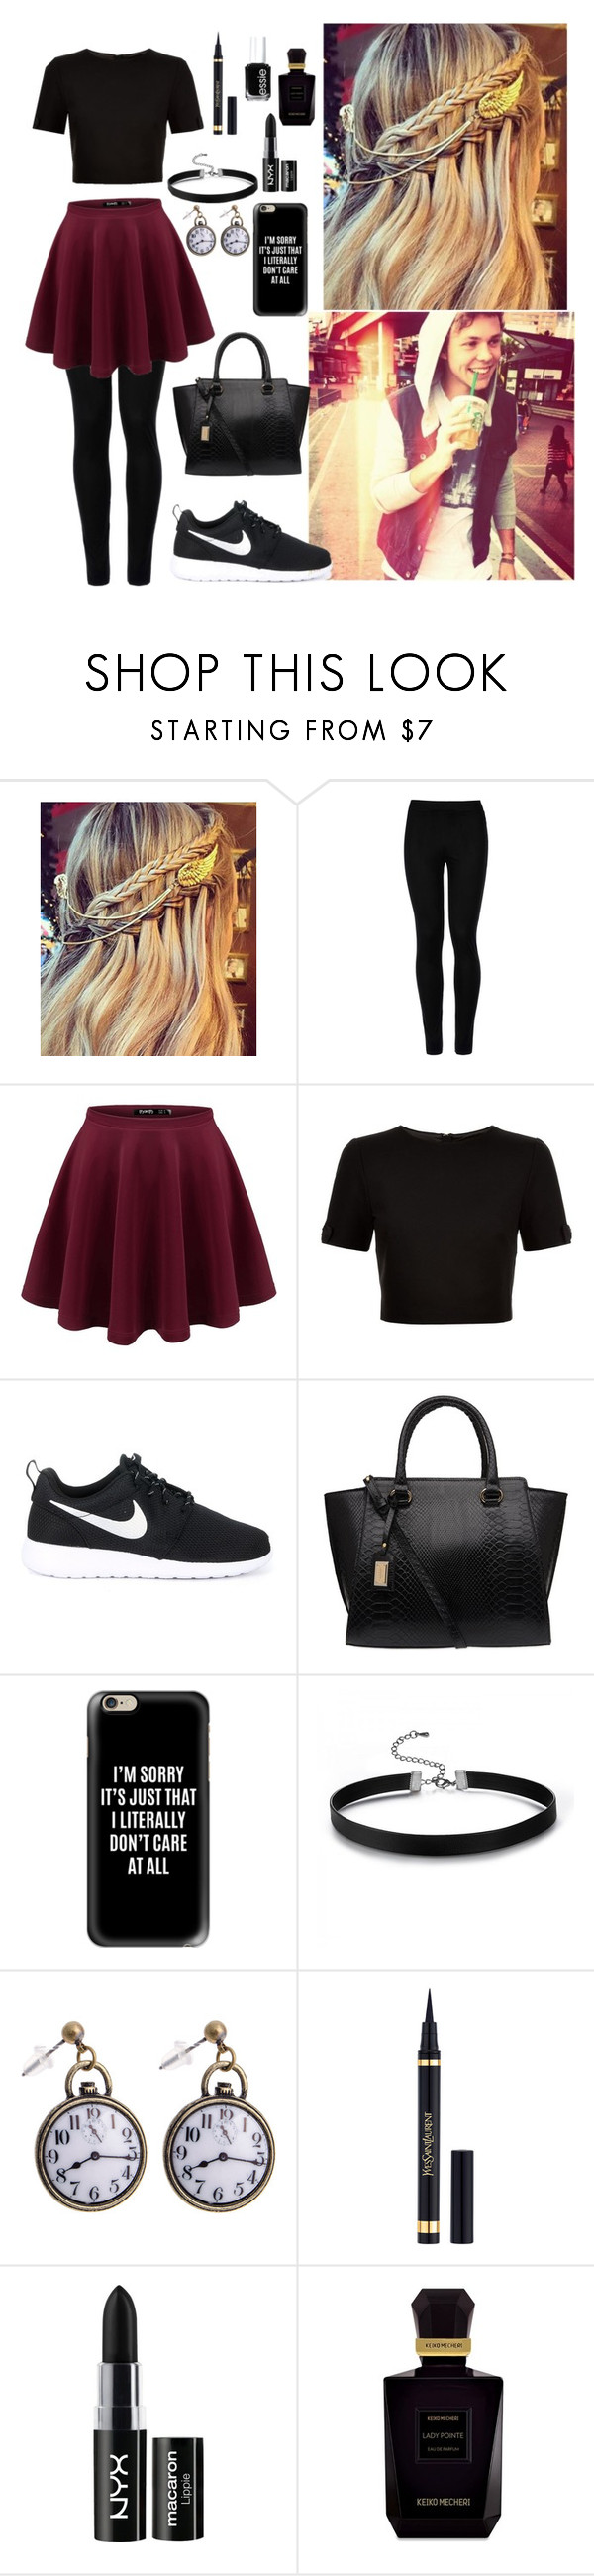 """""""Round in town with ash"""" by flxshlxght ❤ liked on Polyvore featuring Wolford, Ted Baker, NIKE, Casetify, Yves Saint Laurent, NYX, Keiko Mecheri and Essie"""